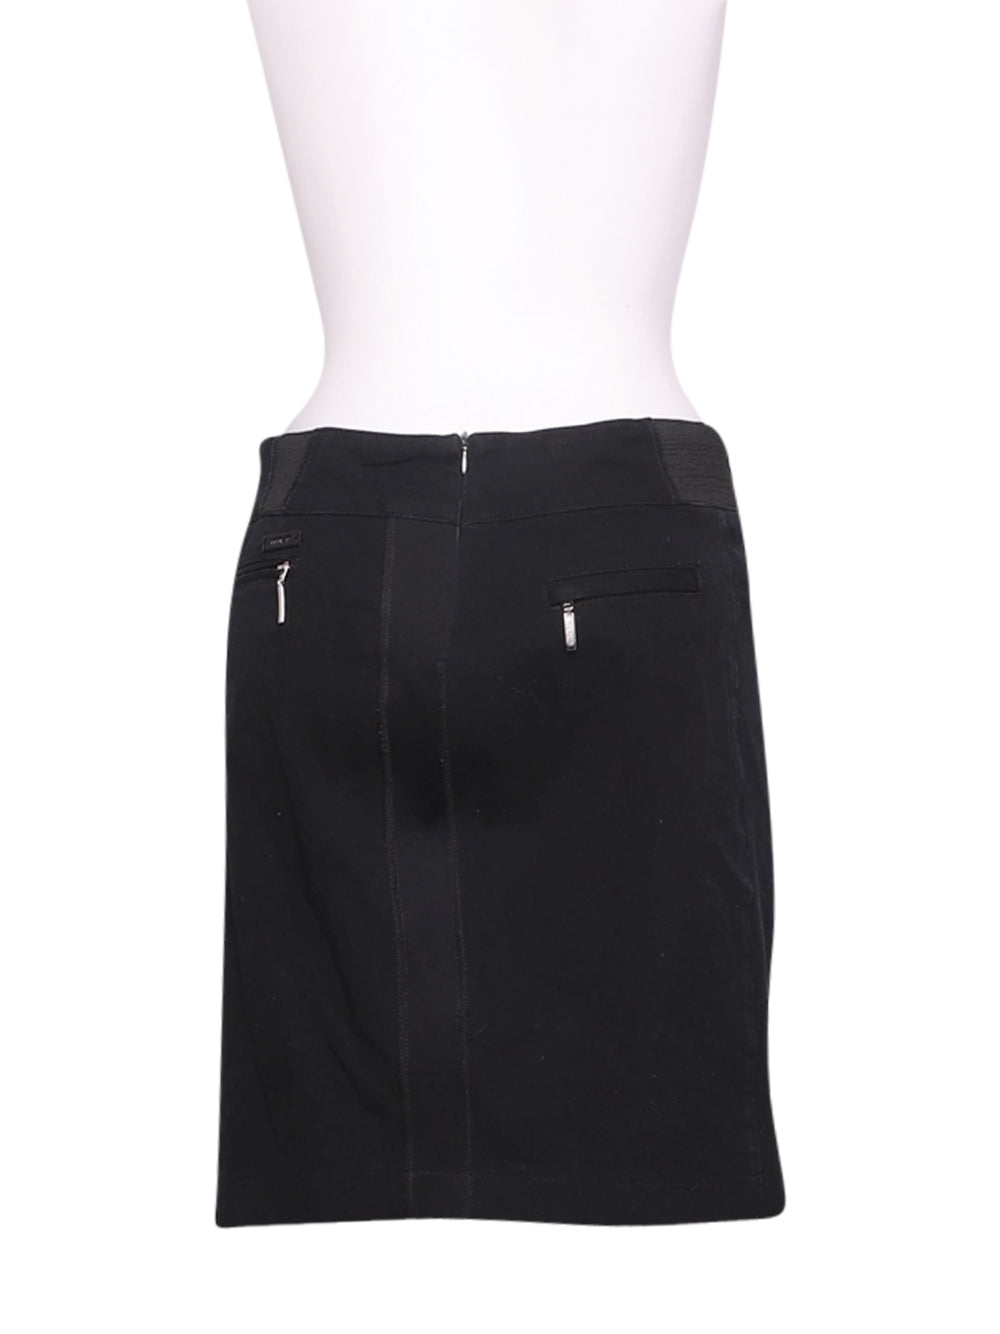 Back photo of Preloved Liu Jo Black Woman's skirt - size 10/M